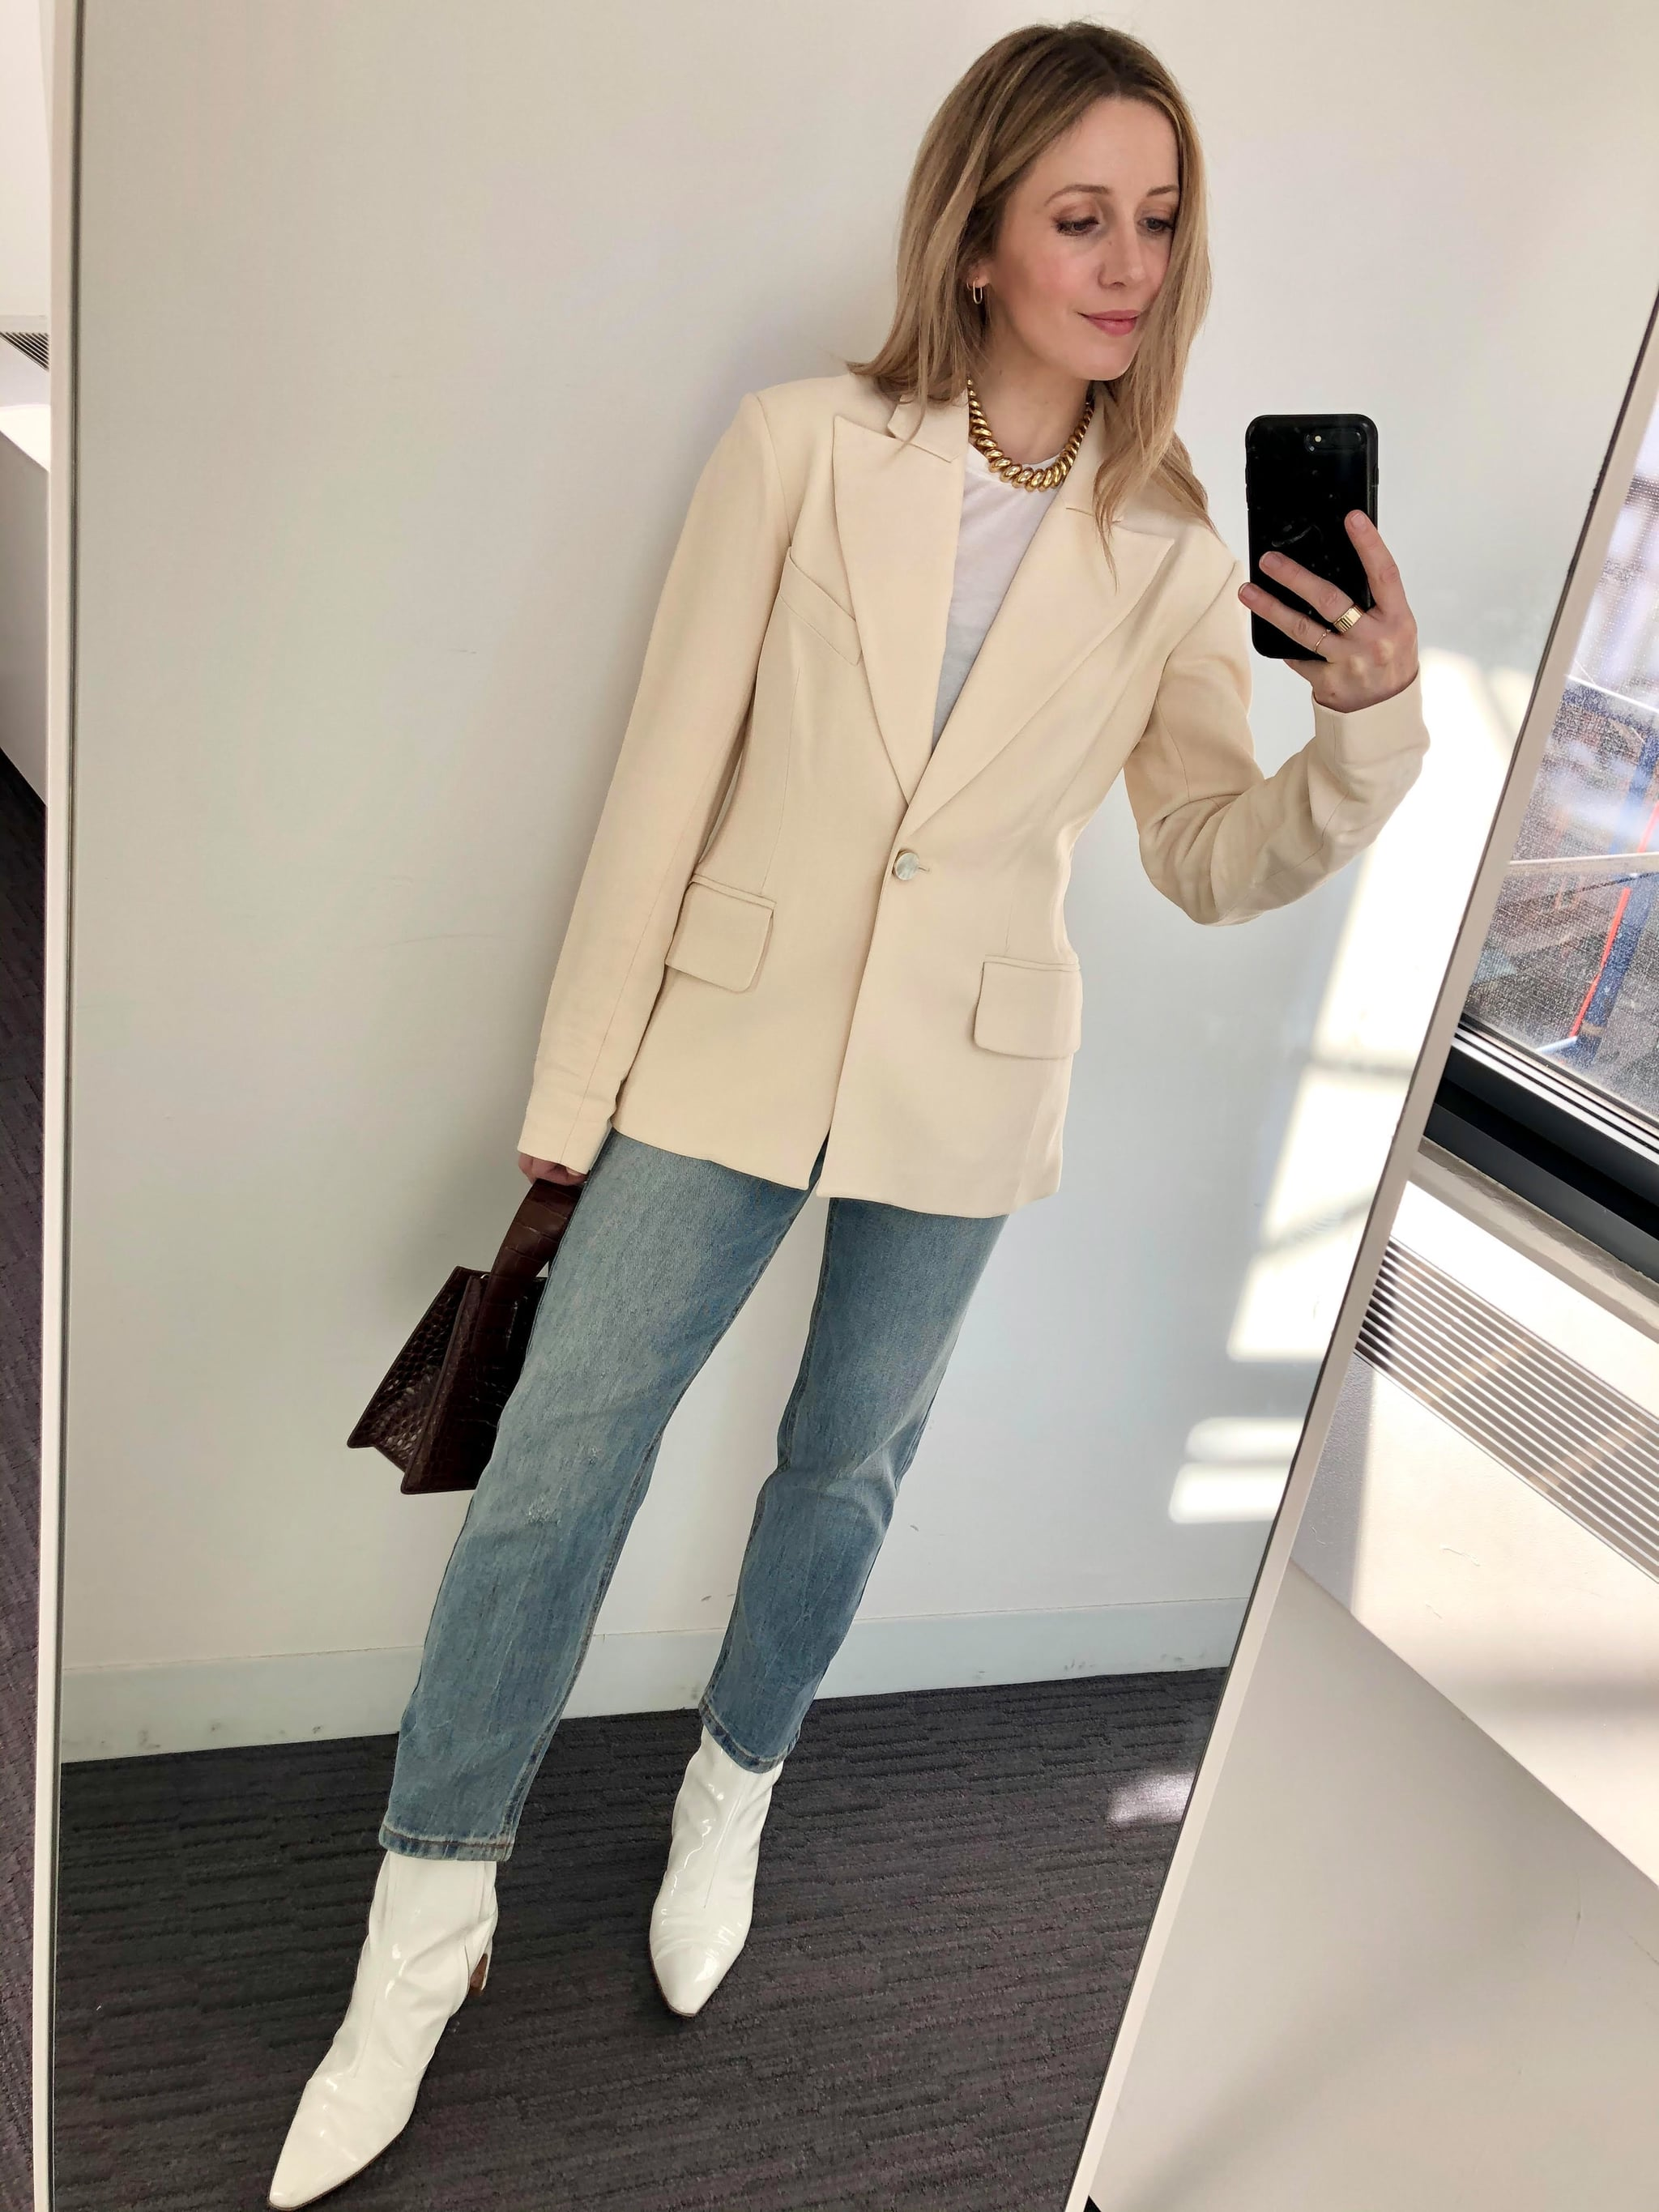 How I Styled My Straight,Leg Jeans With a T,Shirt, a Blazer